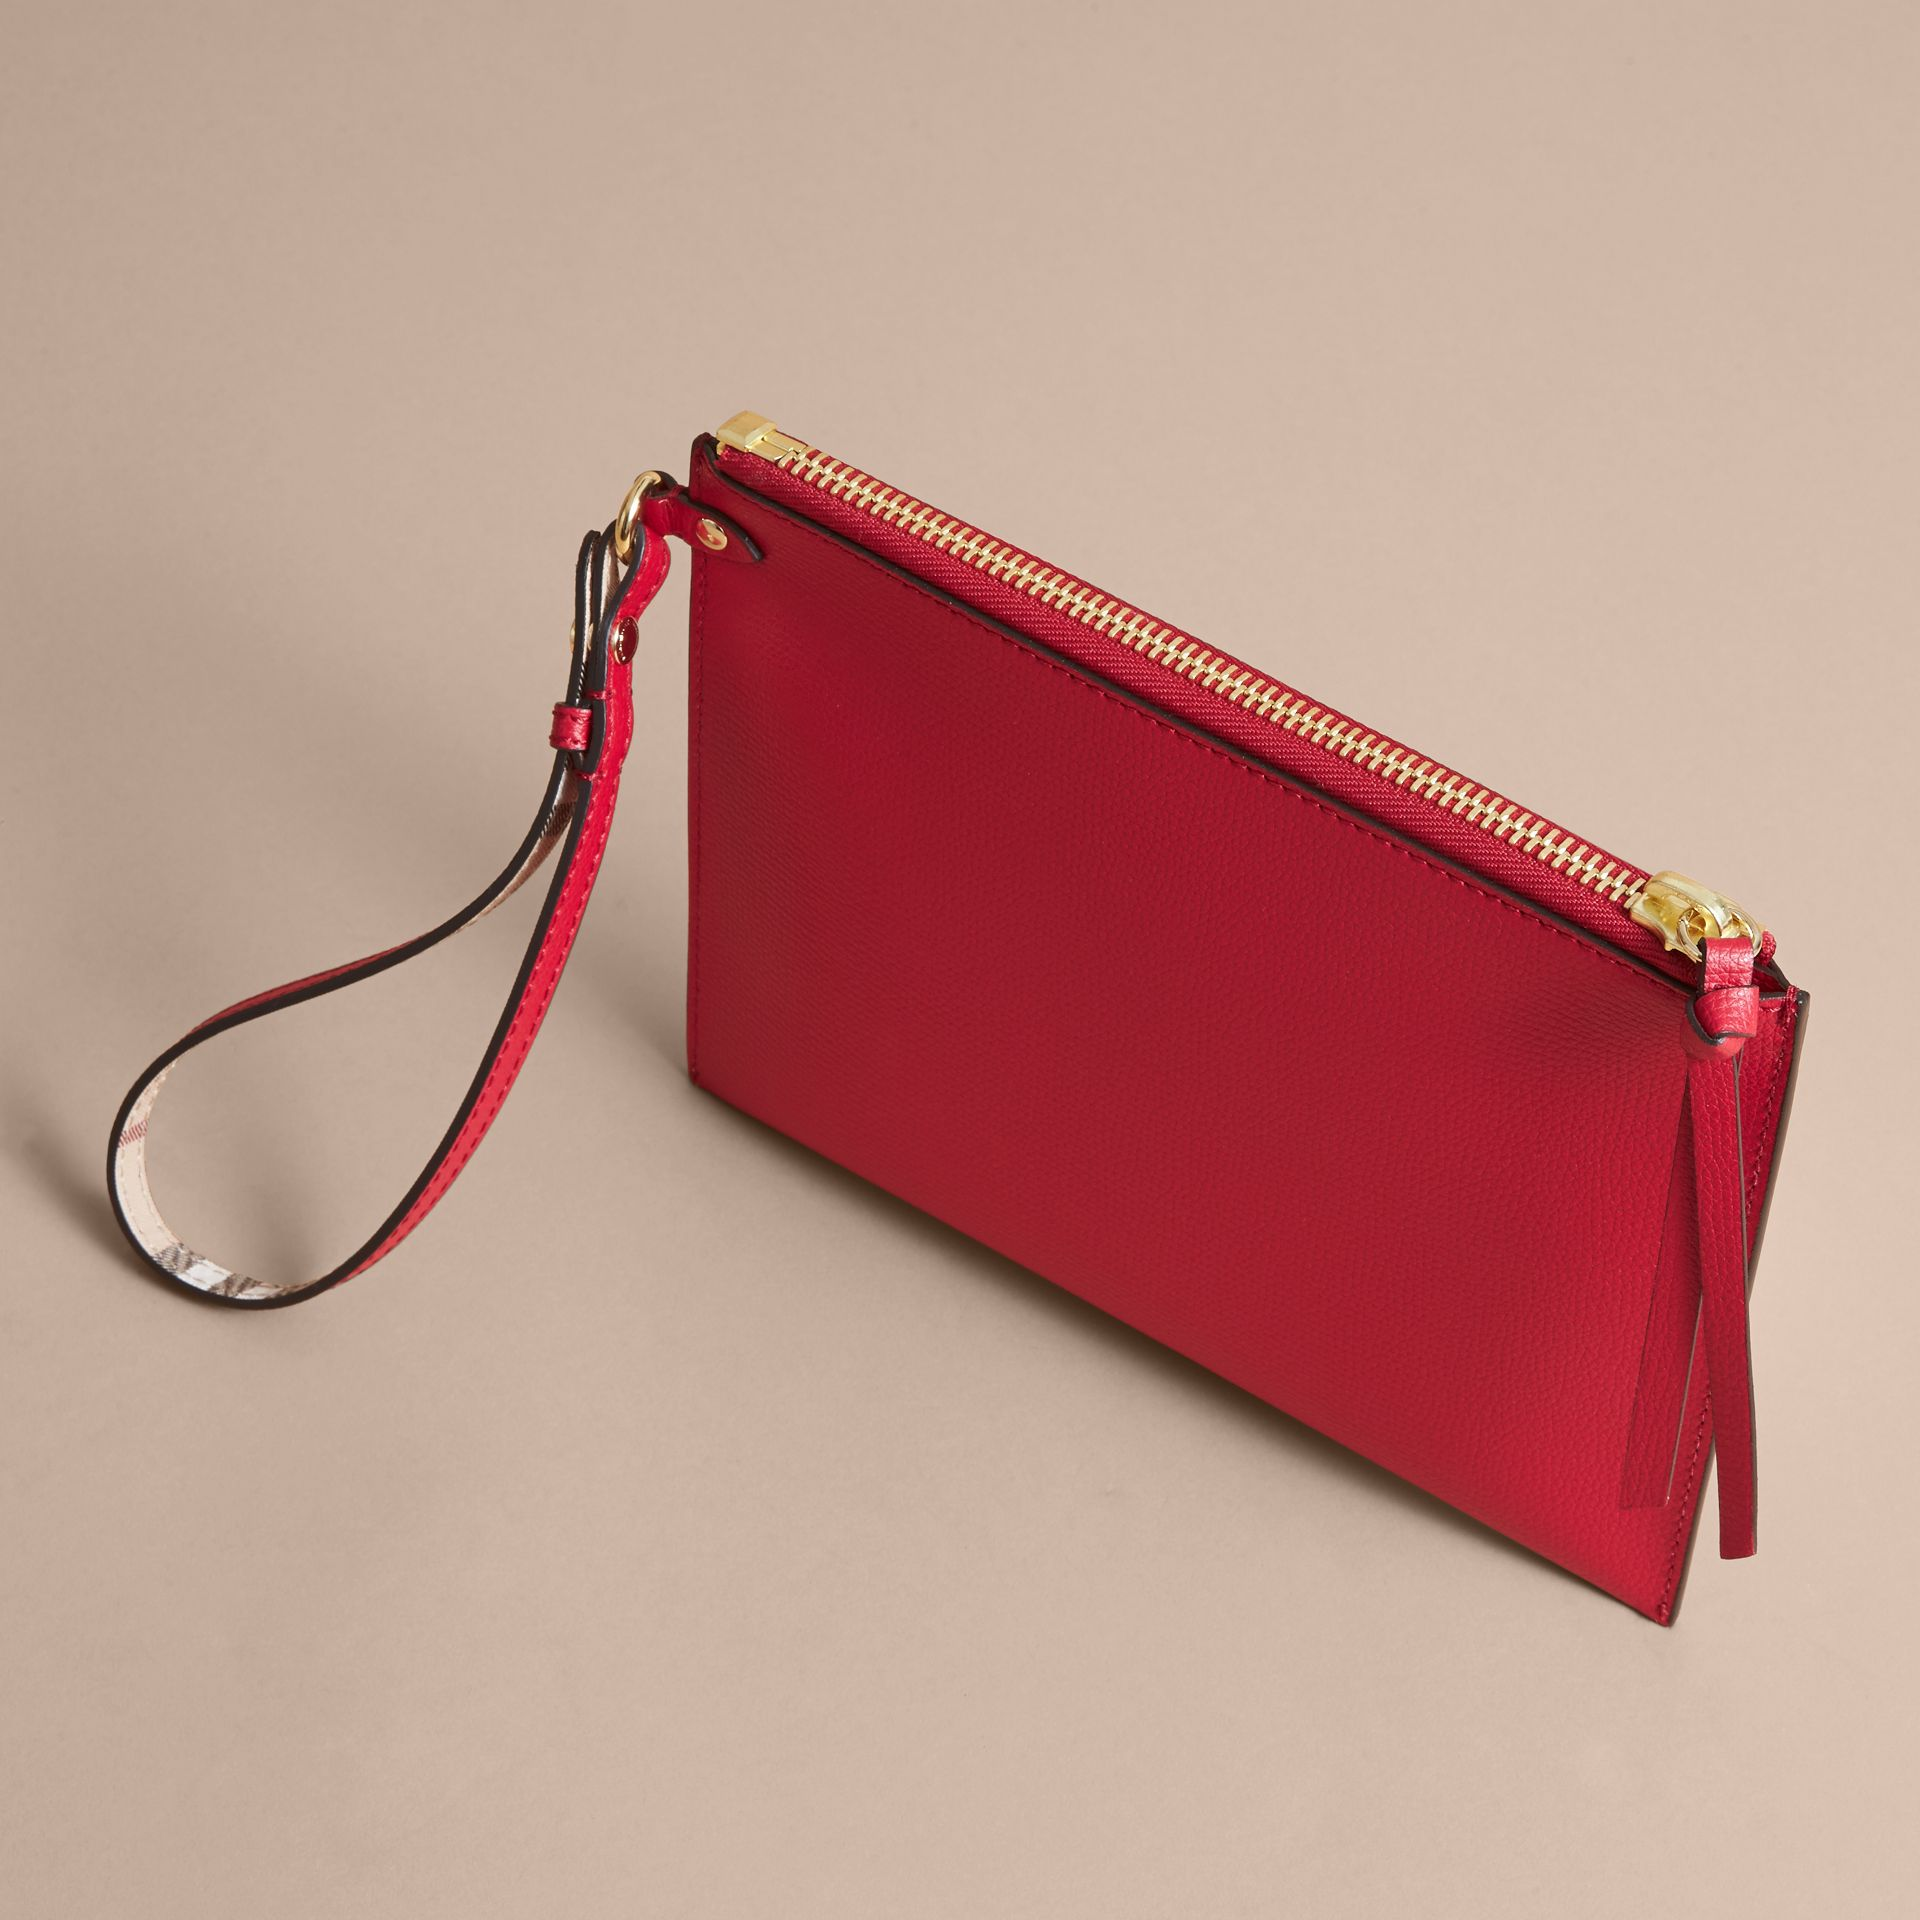 Haymarket Check and Leather Pouch in Poppy Red - Women | Burberry - gallery image 4